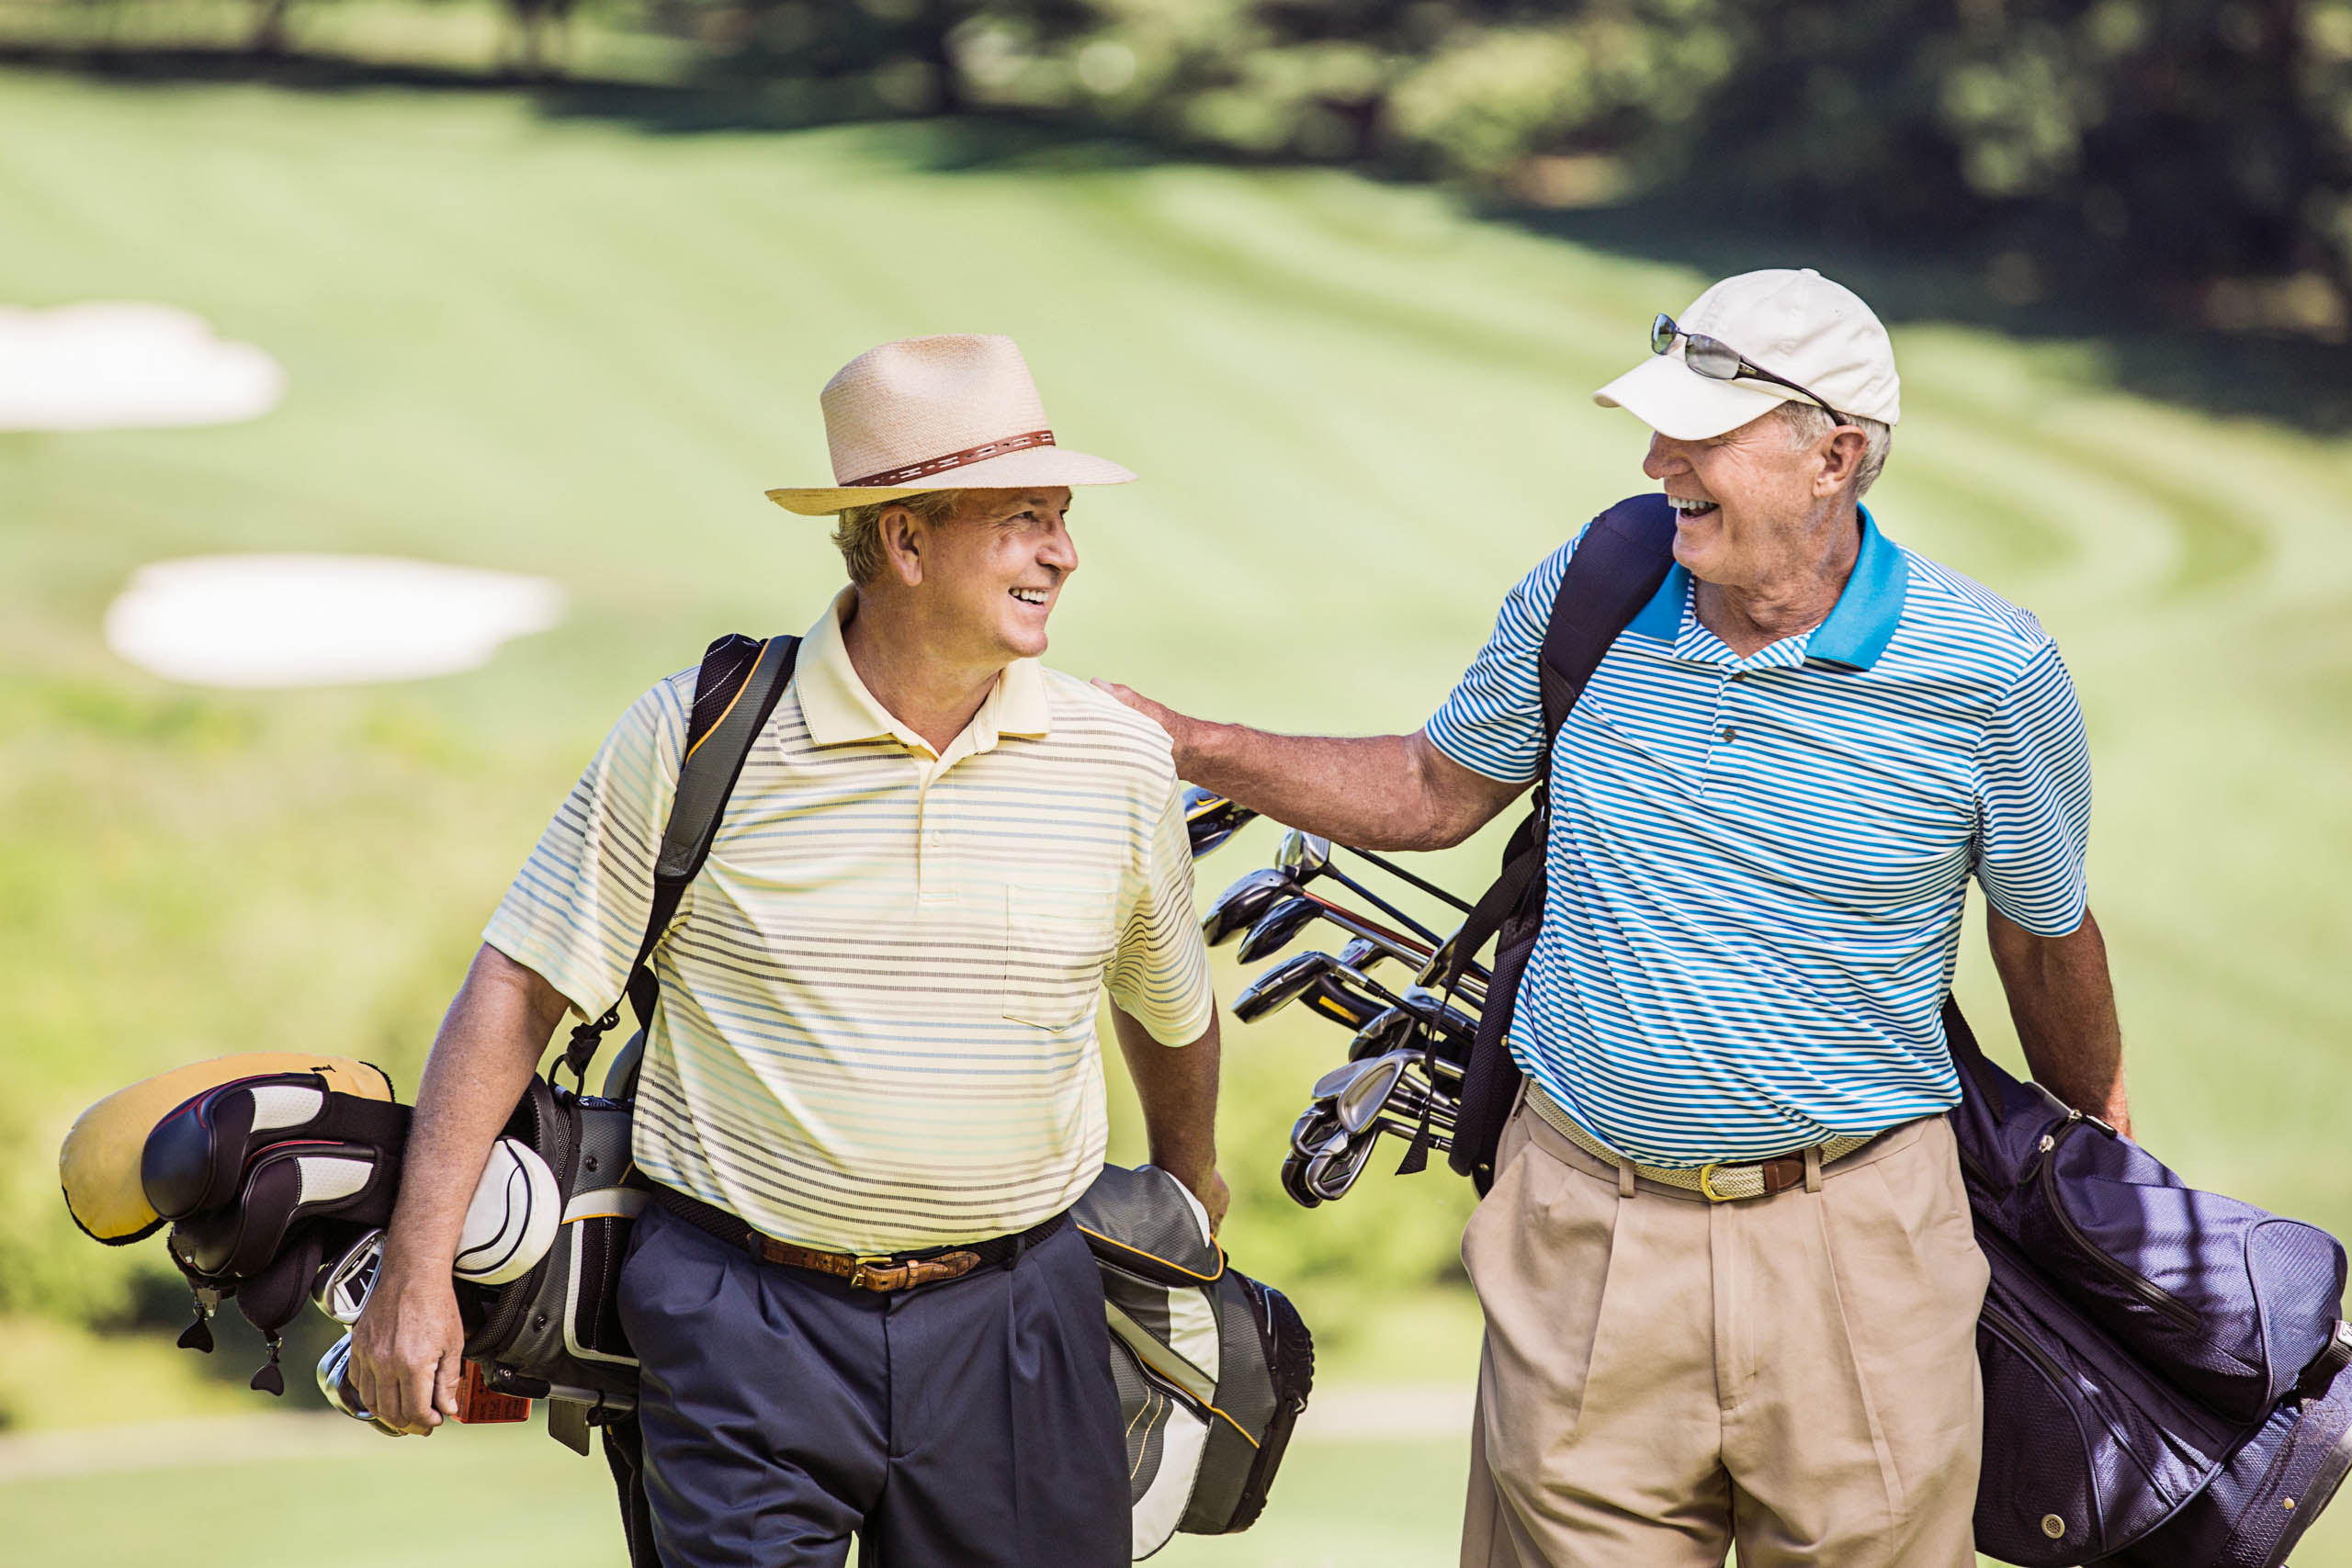 Two senior men on golf course